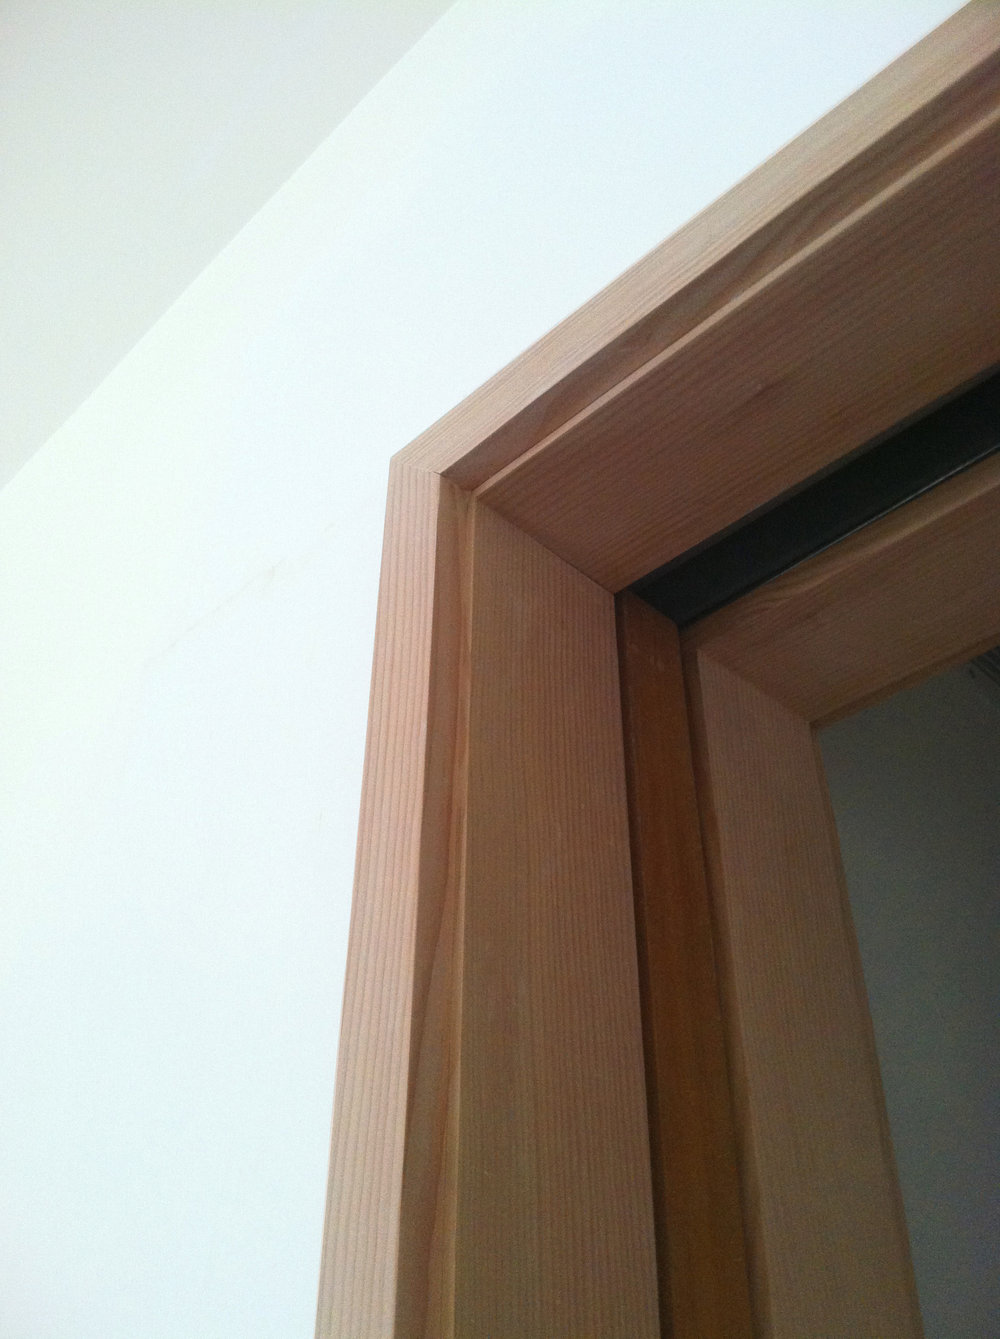 Douglas Fir casings: Passive House Brownstone